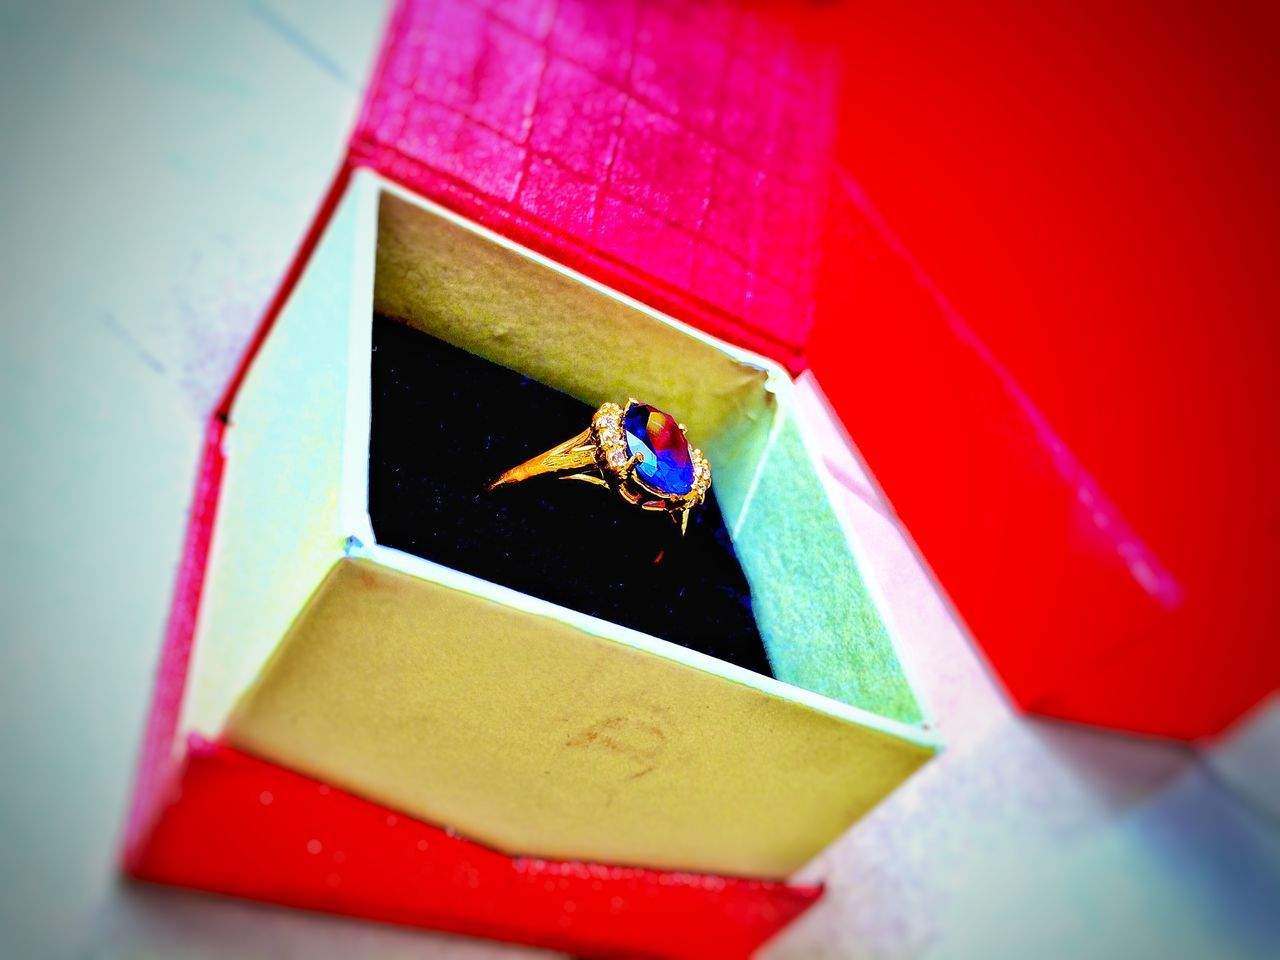 High Angle View Of Gold Ring In Jewelry Box On Table